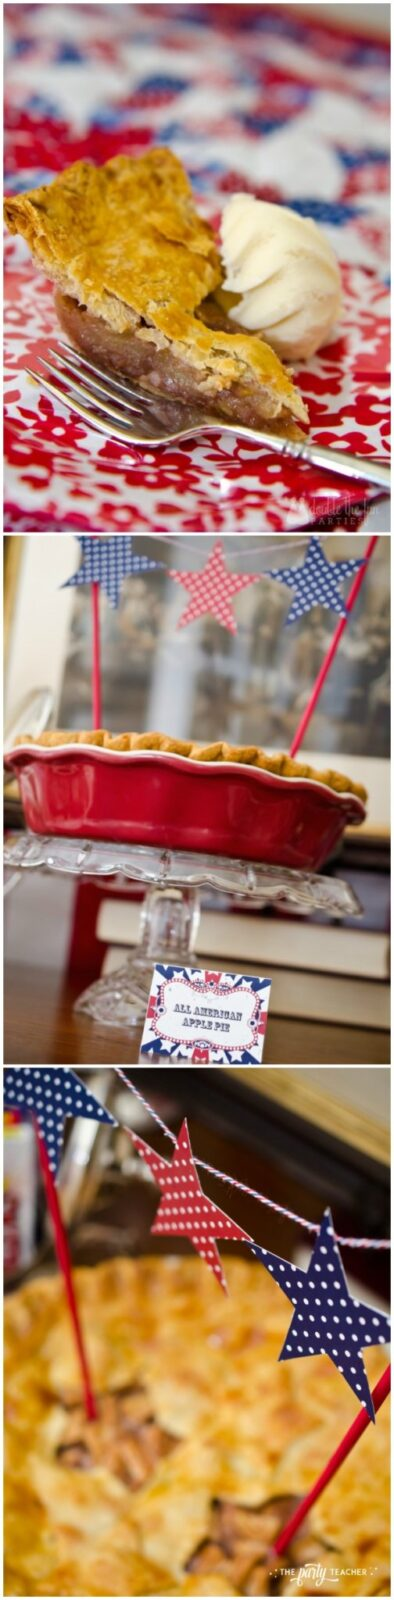 Apple pie for 4th of July party - The Party Teacher